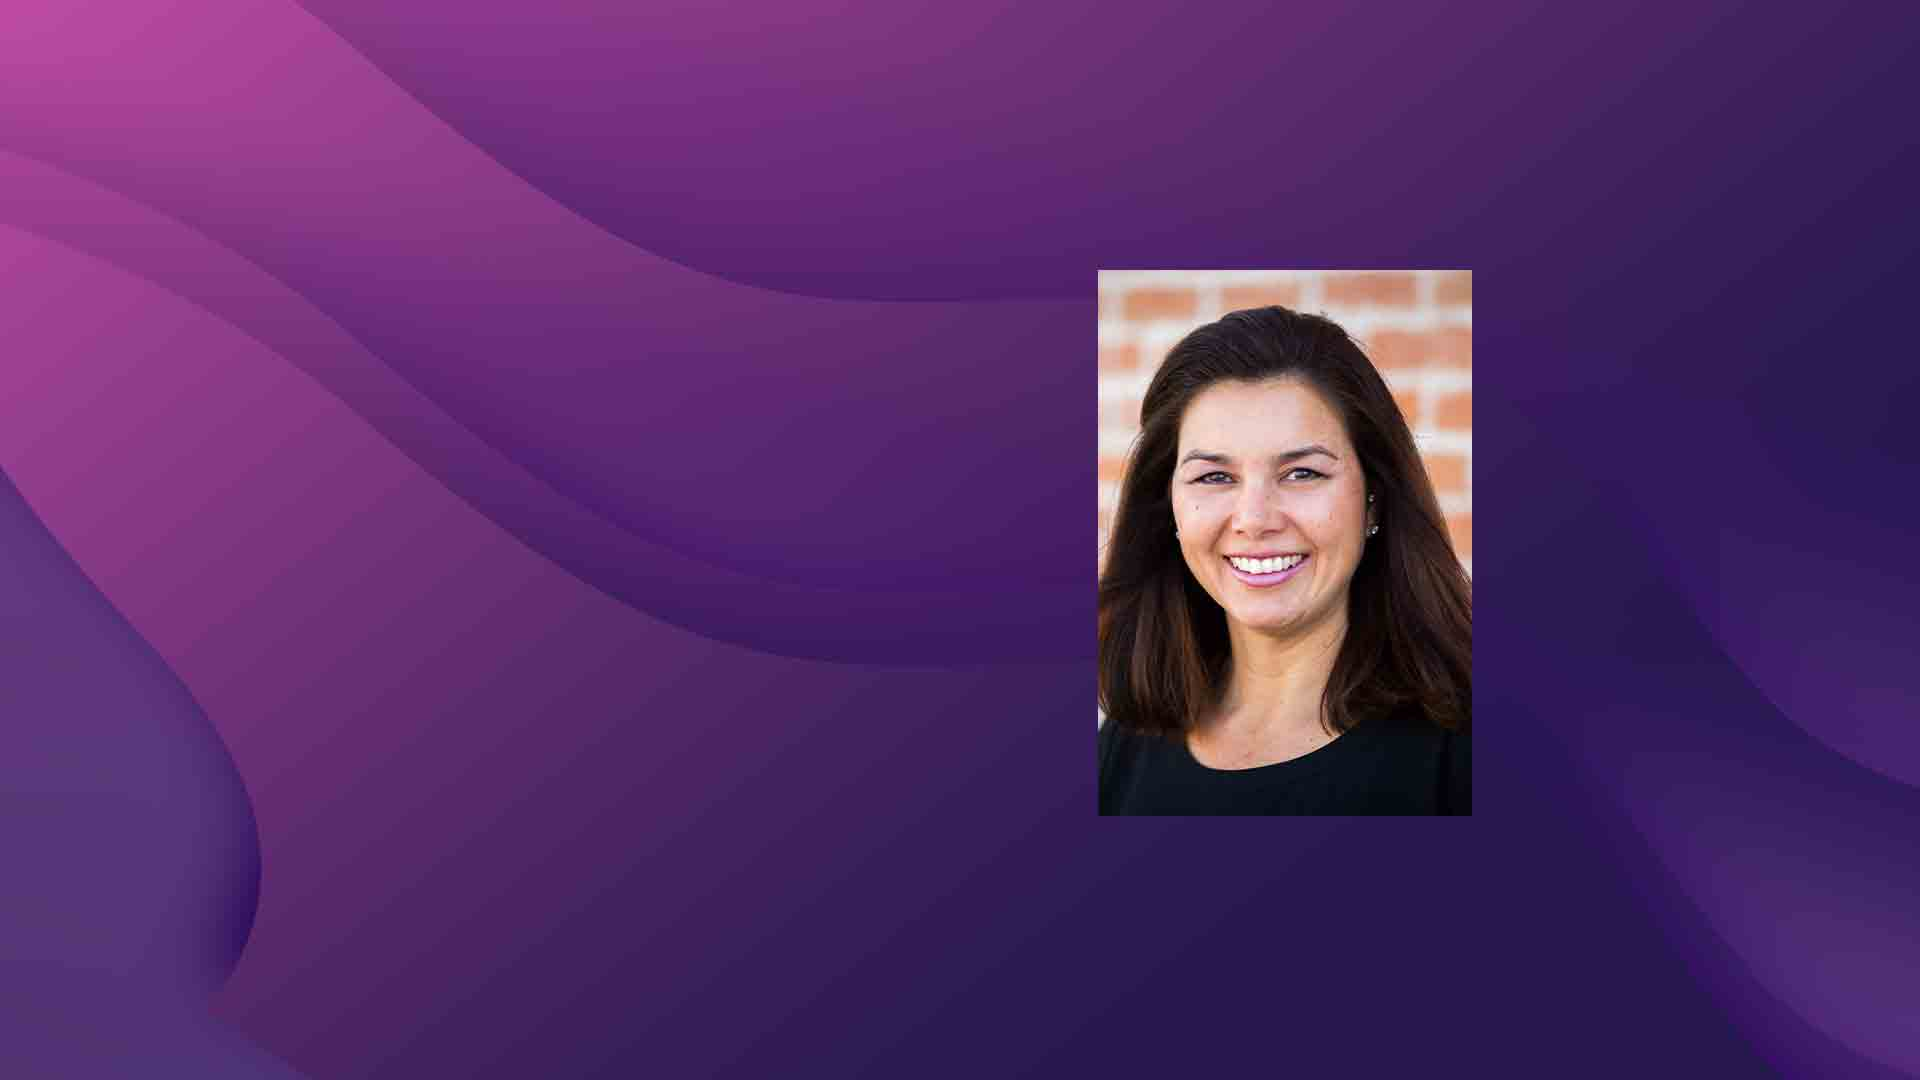 860: Heidi Jannenga Shares The Tech Startup Story Behind WebPT